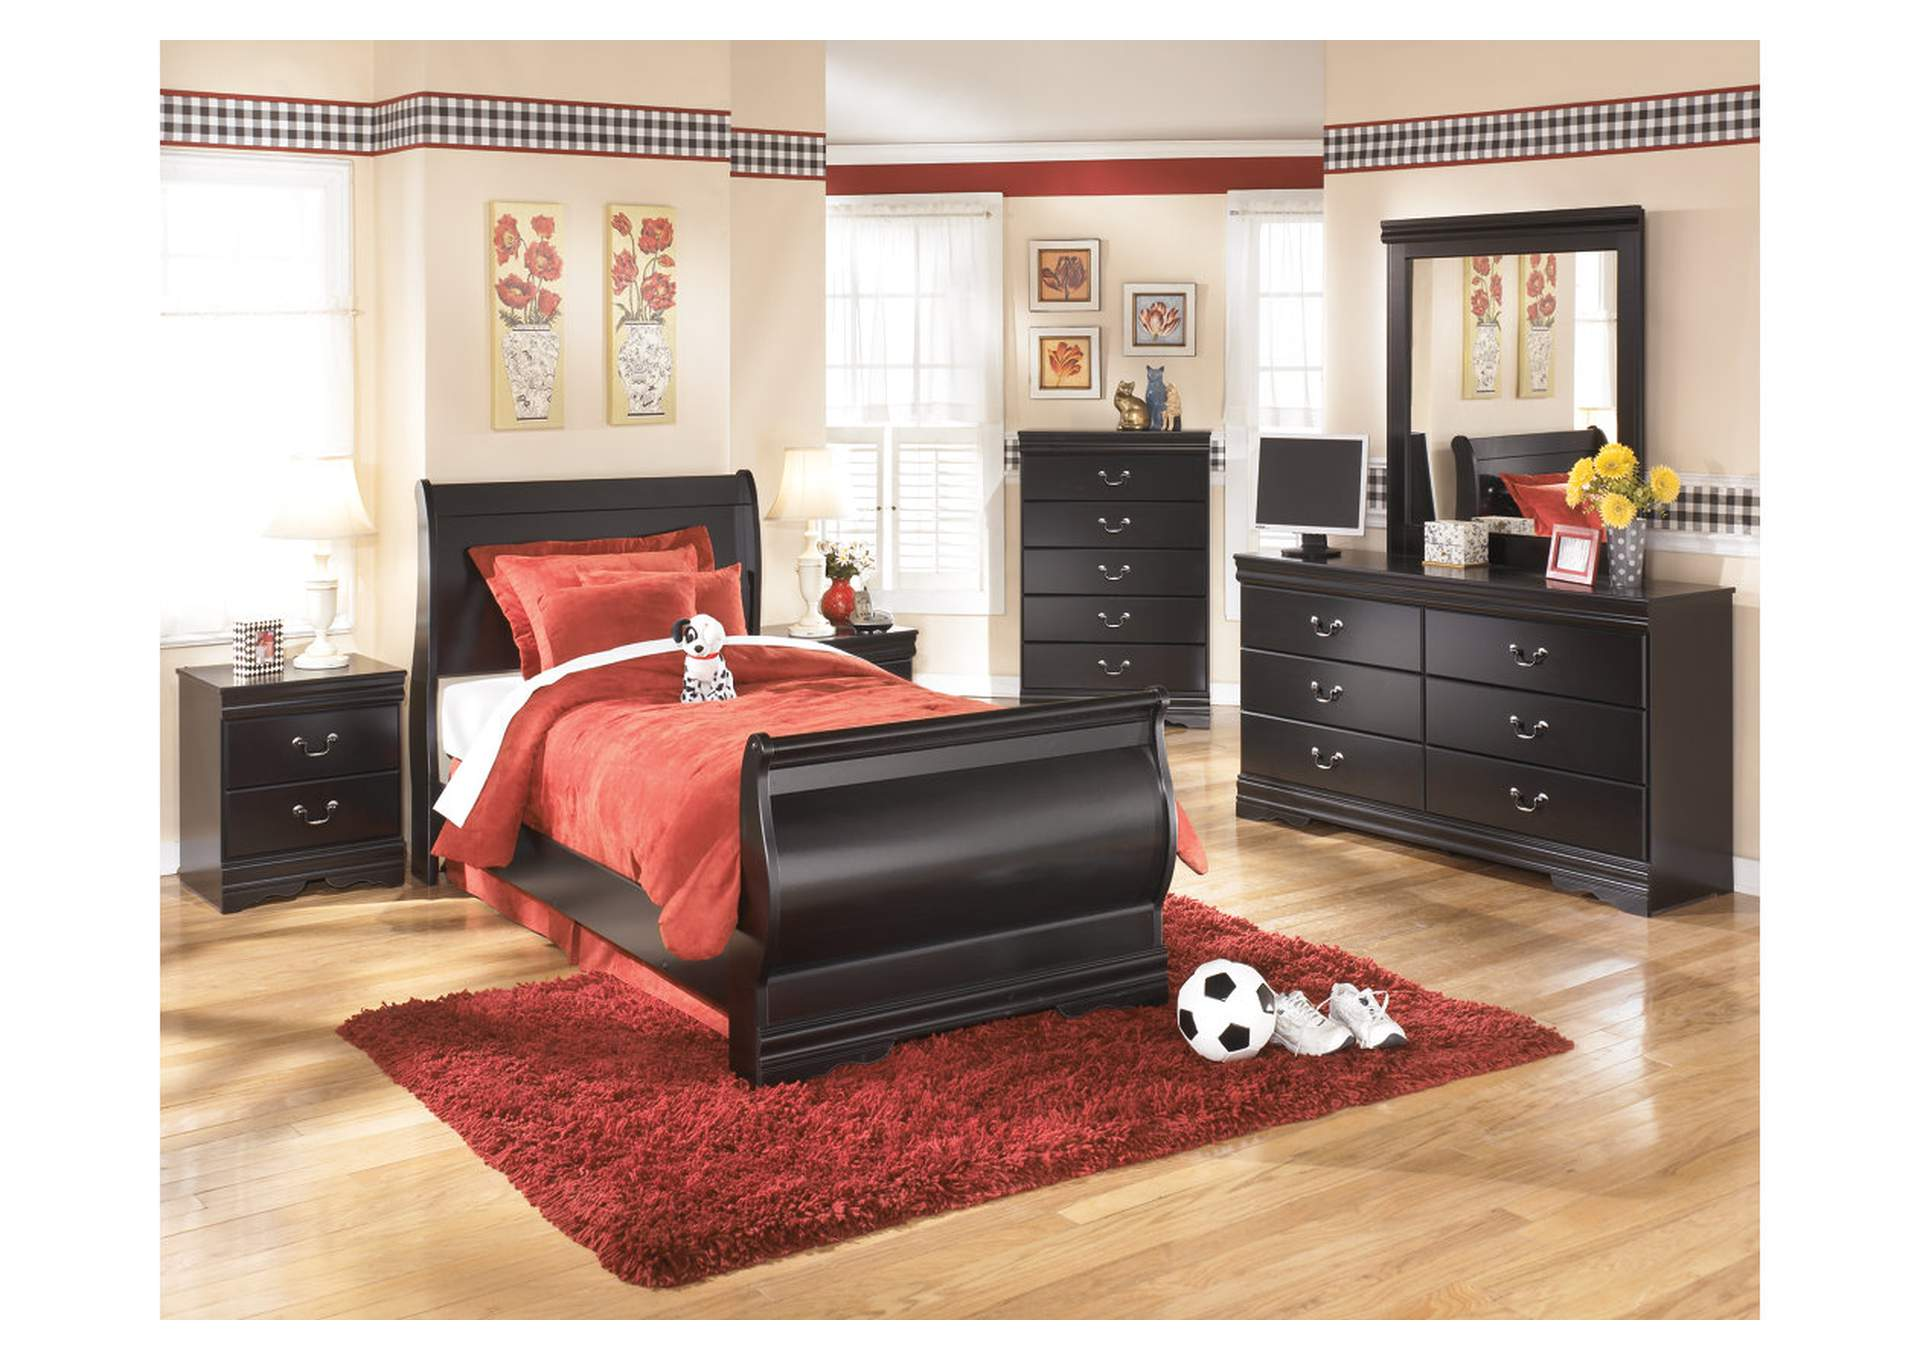 Huey Vineyard Full Sleigh Bed w/Dresser, Mirror, Drawer Chest & Nightstand,Signature Design By Ashley